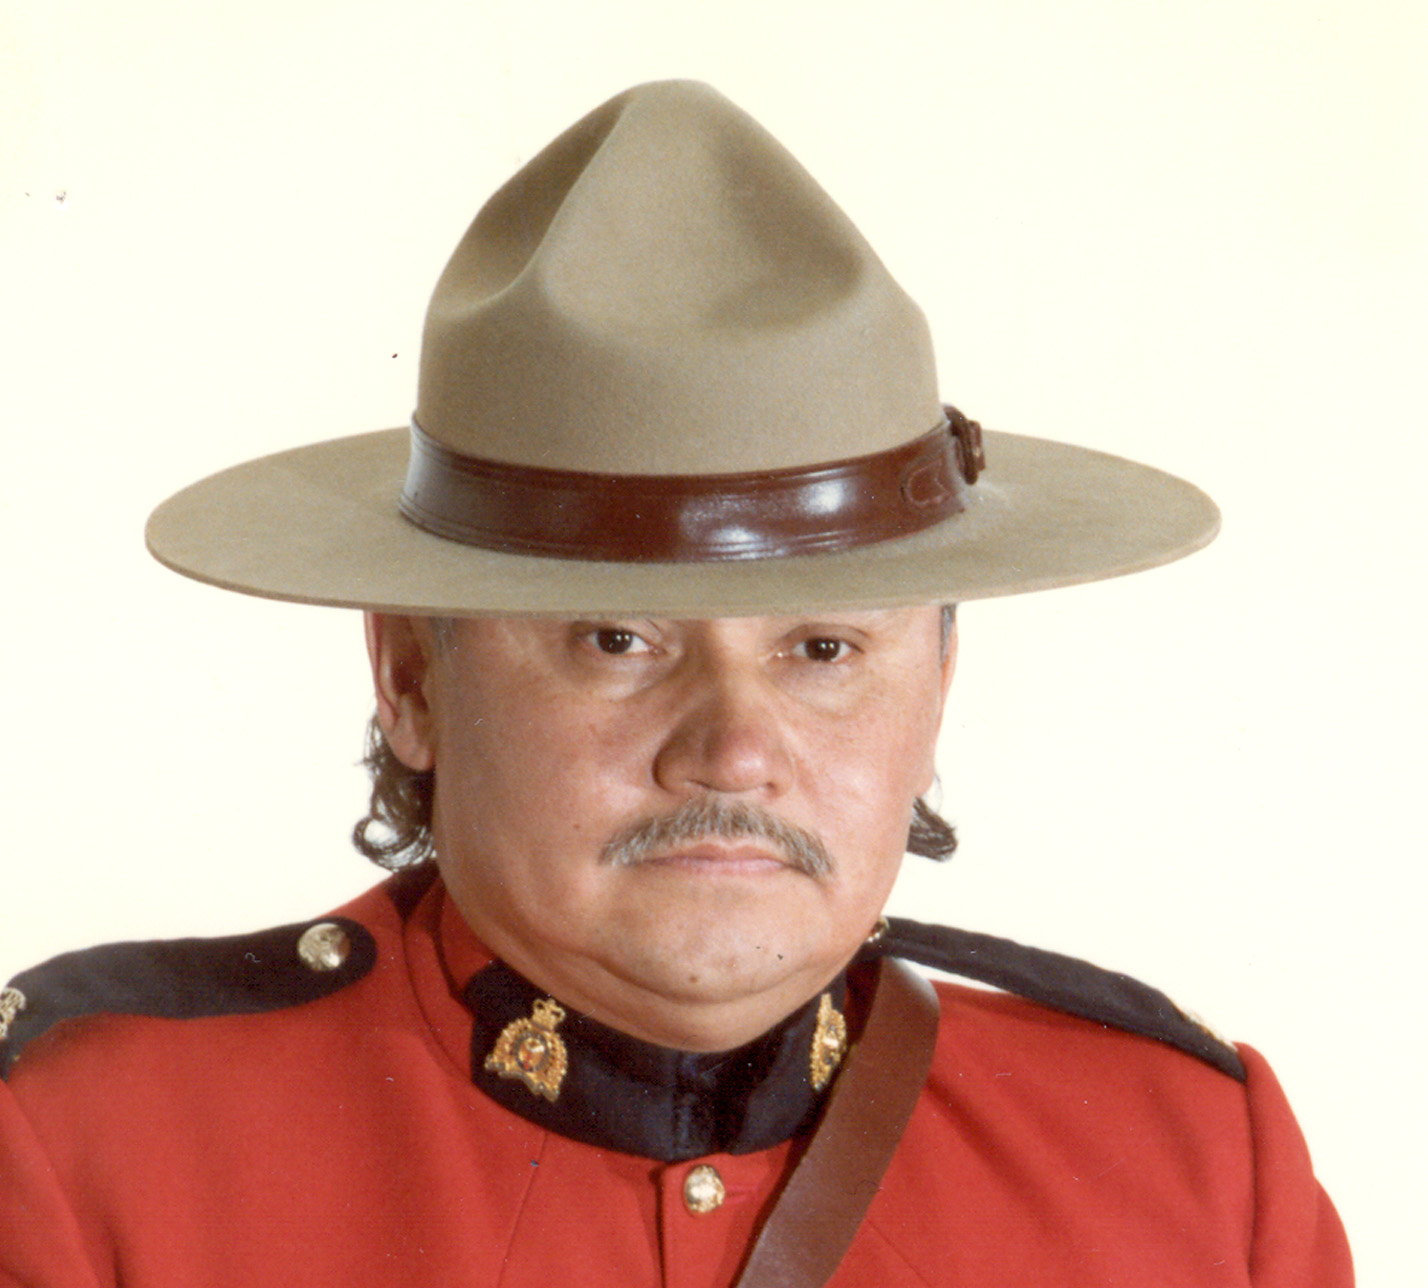 Constable Dennis Douglas Strongquill – © Her Majesty the Queen in Right of Canada as represented by the Royal Canadian Mounted Police